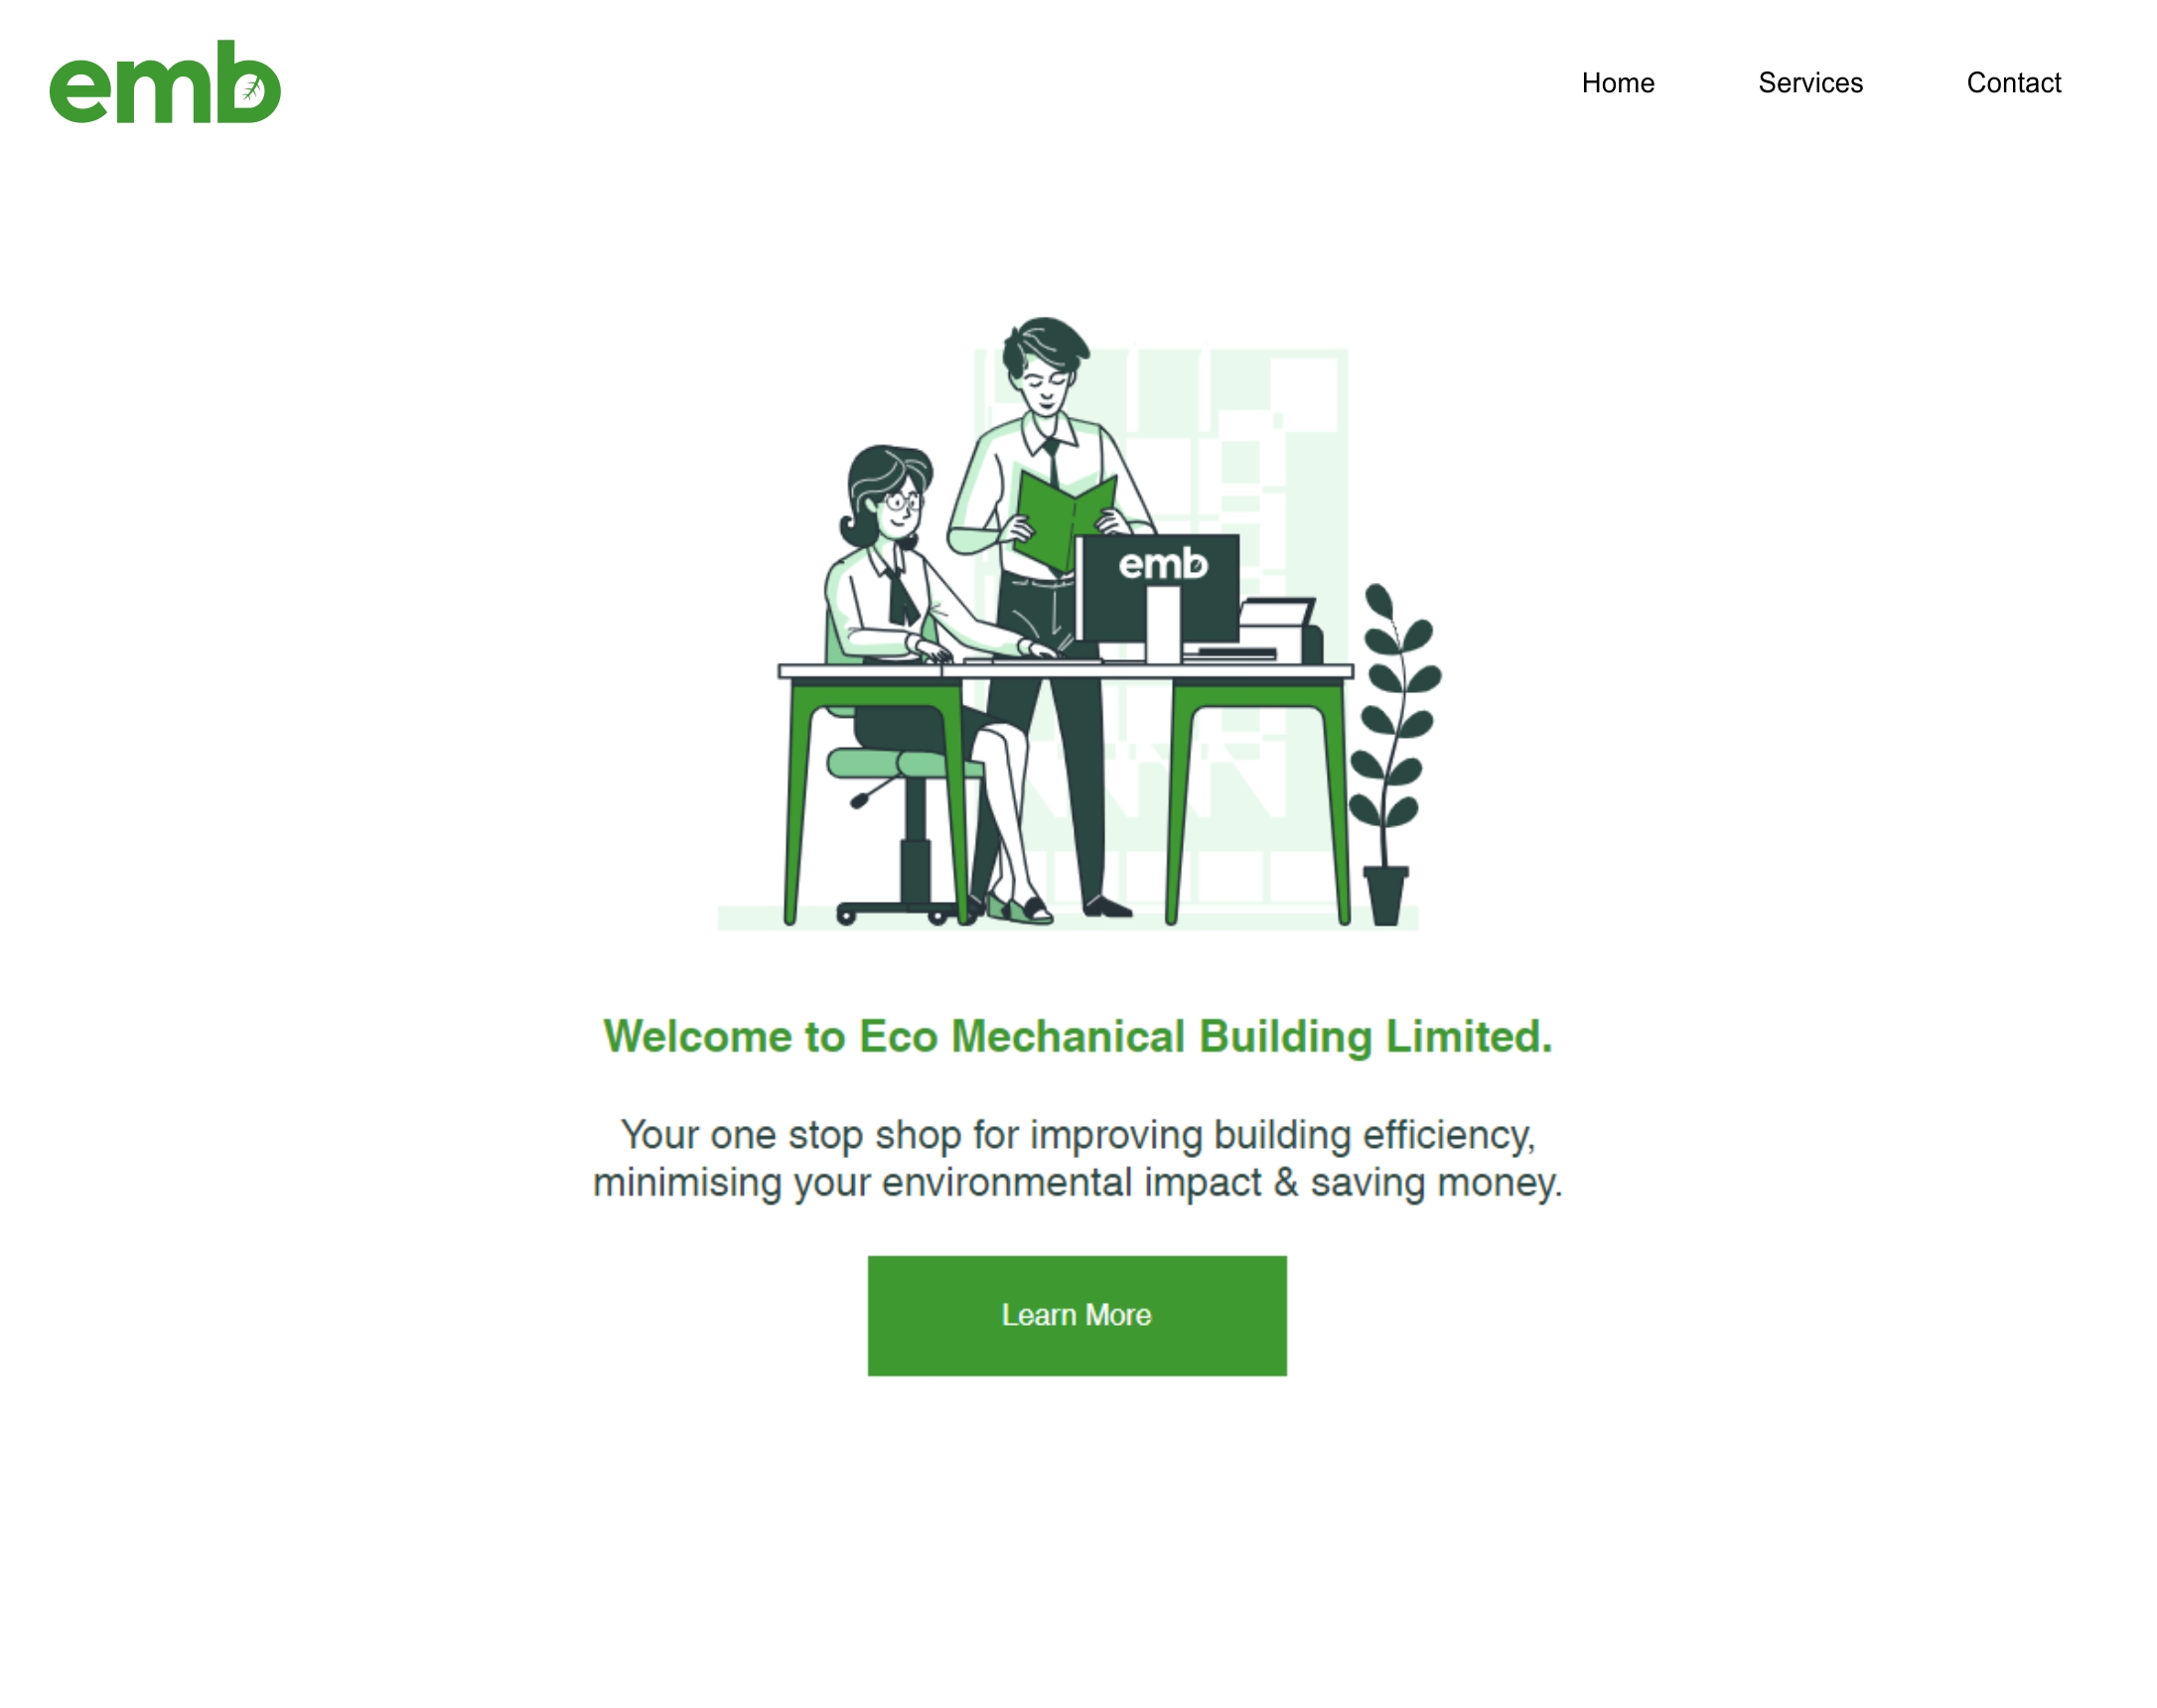 emb-ltd A one stop shop for improving building efficiency,...